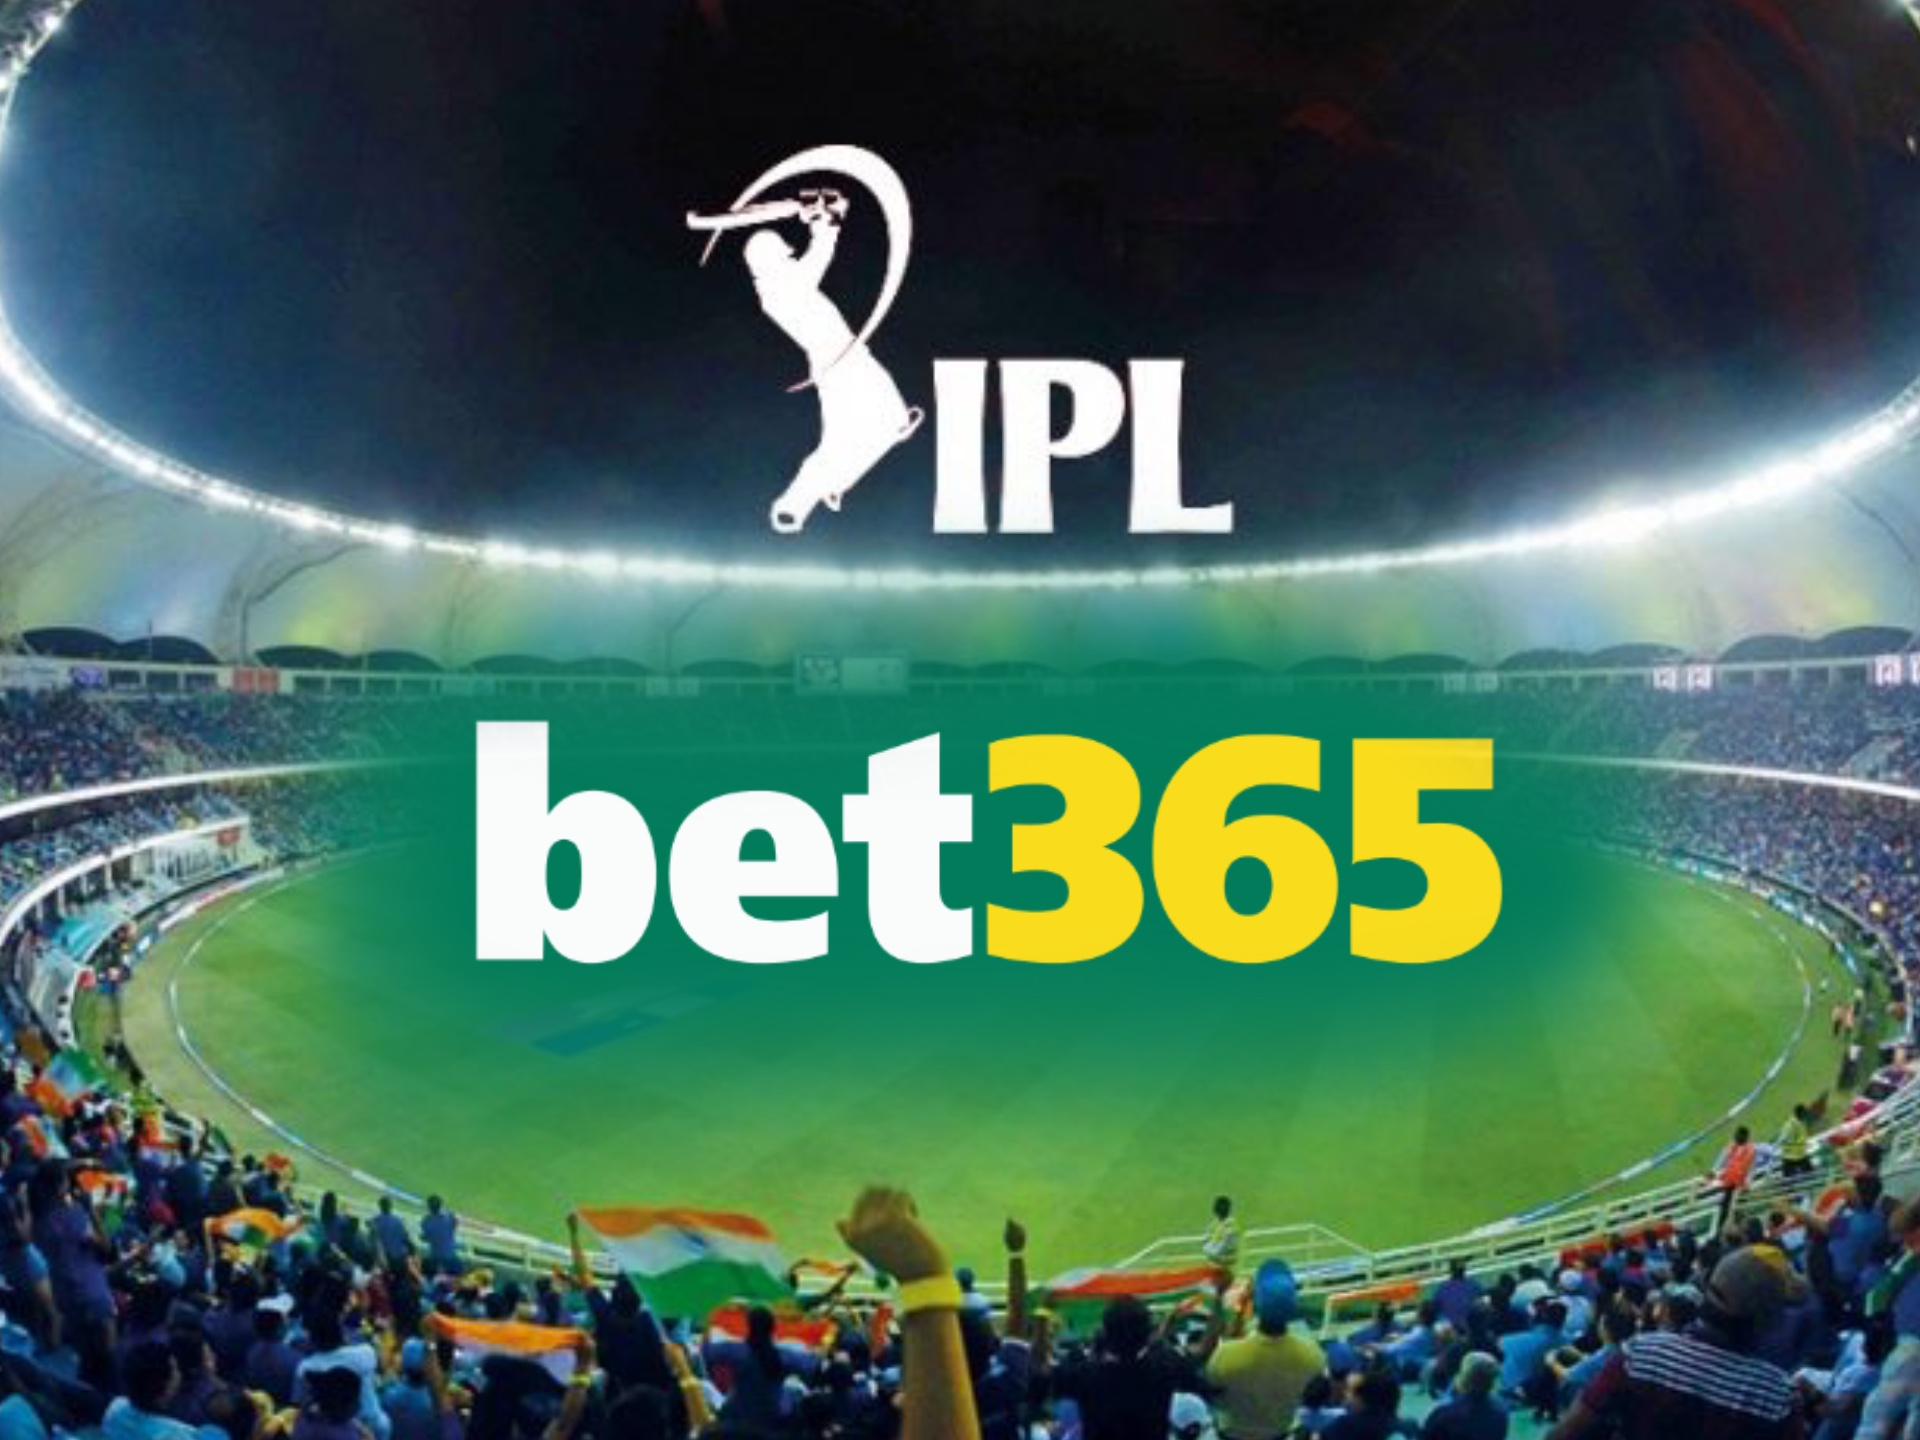 Receive bet365 welcome bonus and spend it on IPL bets.